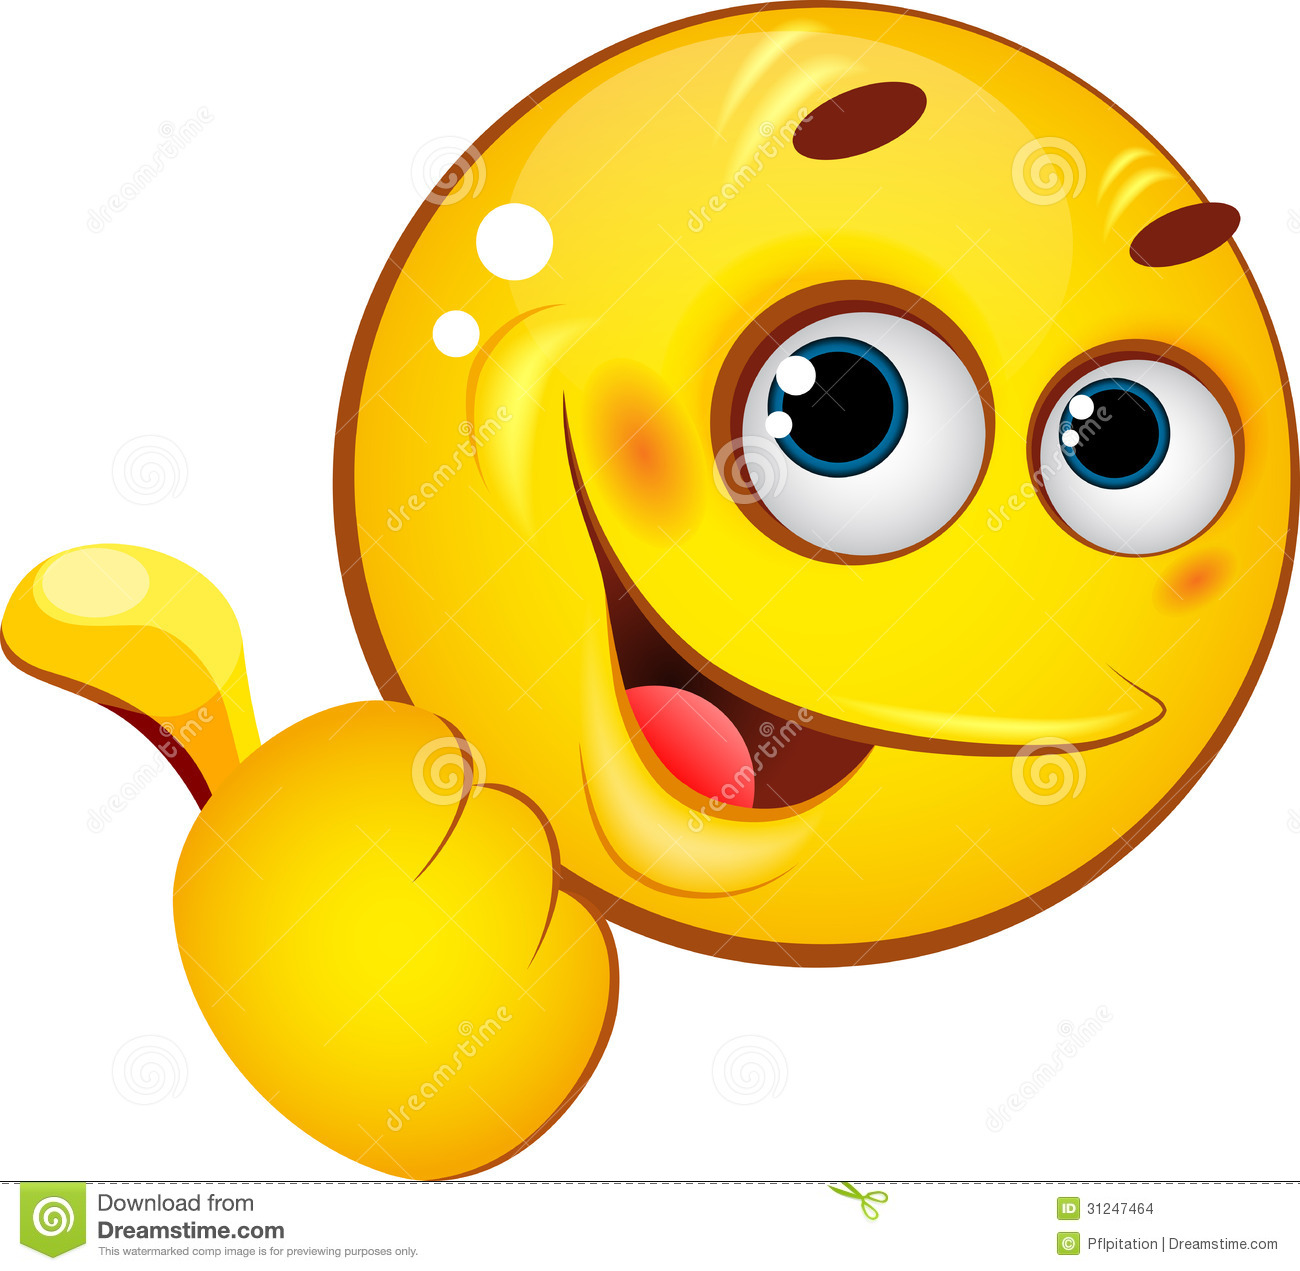 free emoji clipart at getdrawings com free for personal use free